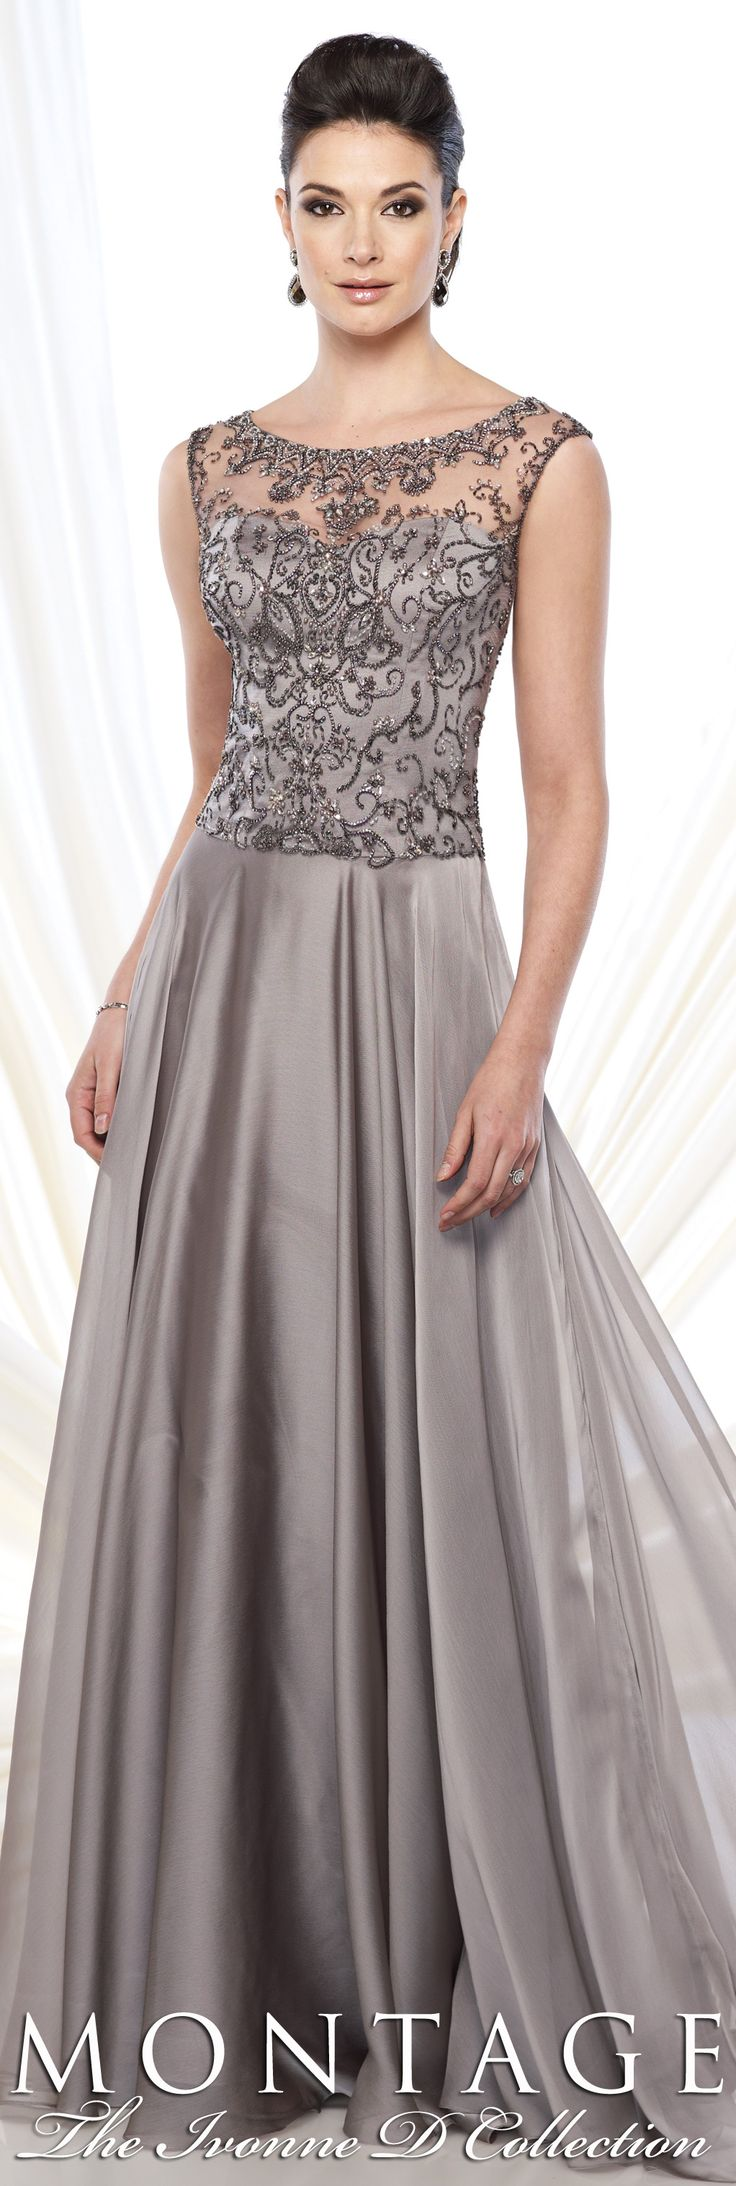 Montage The Ivonne D Collection Fall 2015 - Style No. 215D12 #eveninggowns